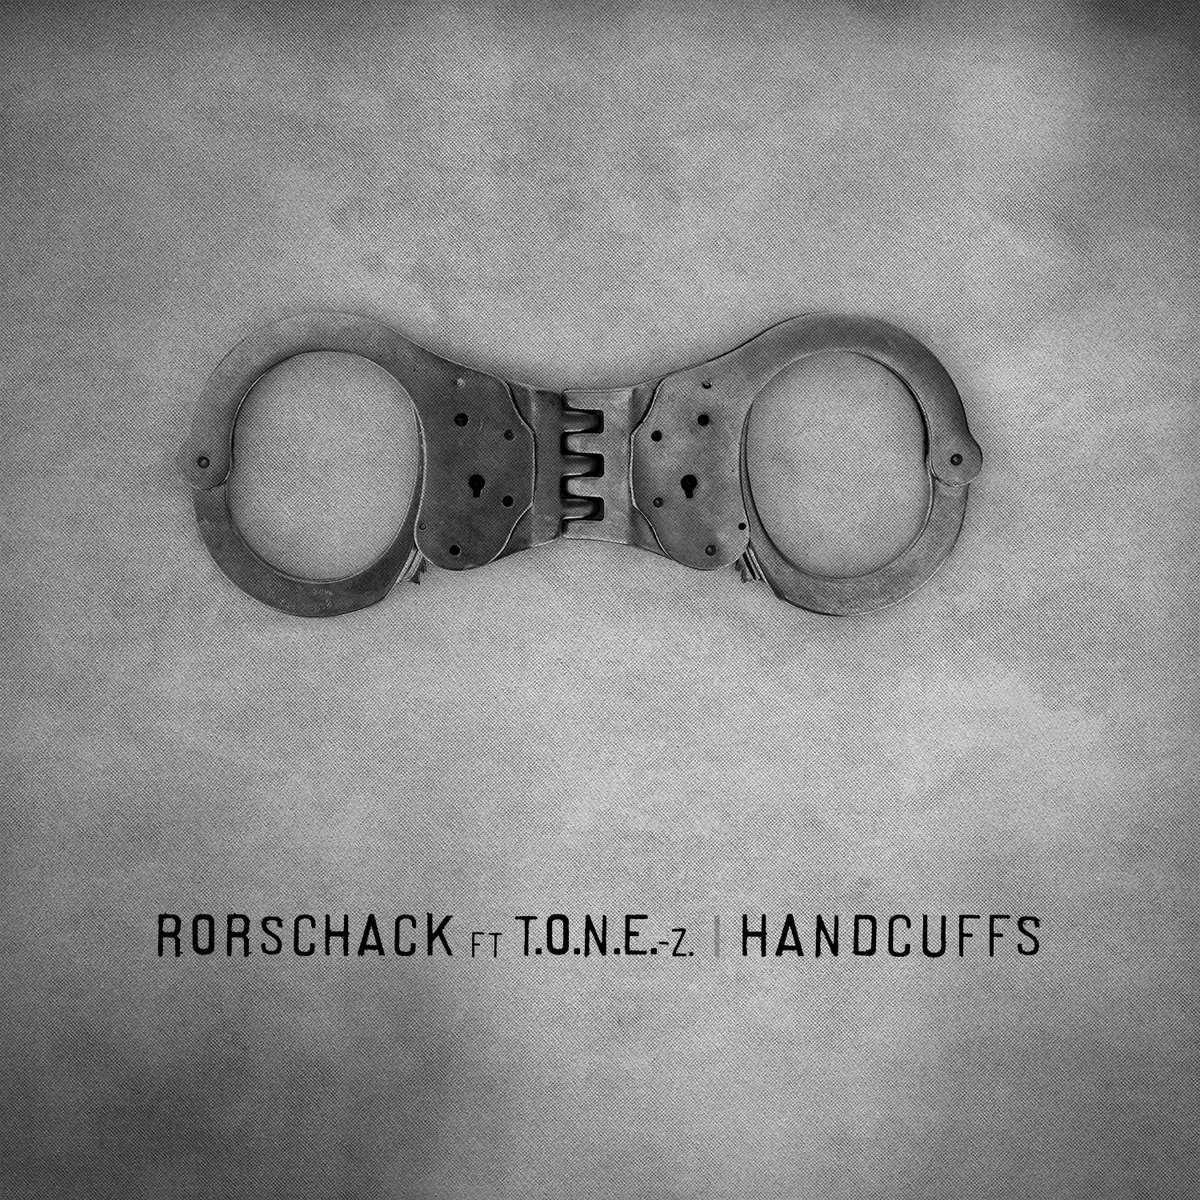 Rorschack feat. T.O.N.E.-z & Jen Stills - Handcuffs @ 'Handcuffs' album (electronic, dubstep)